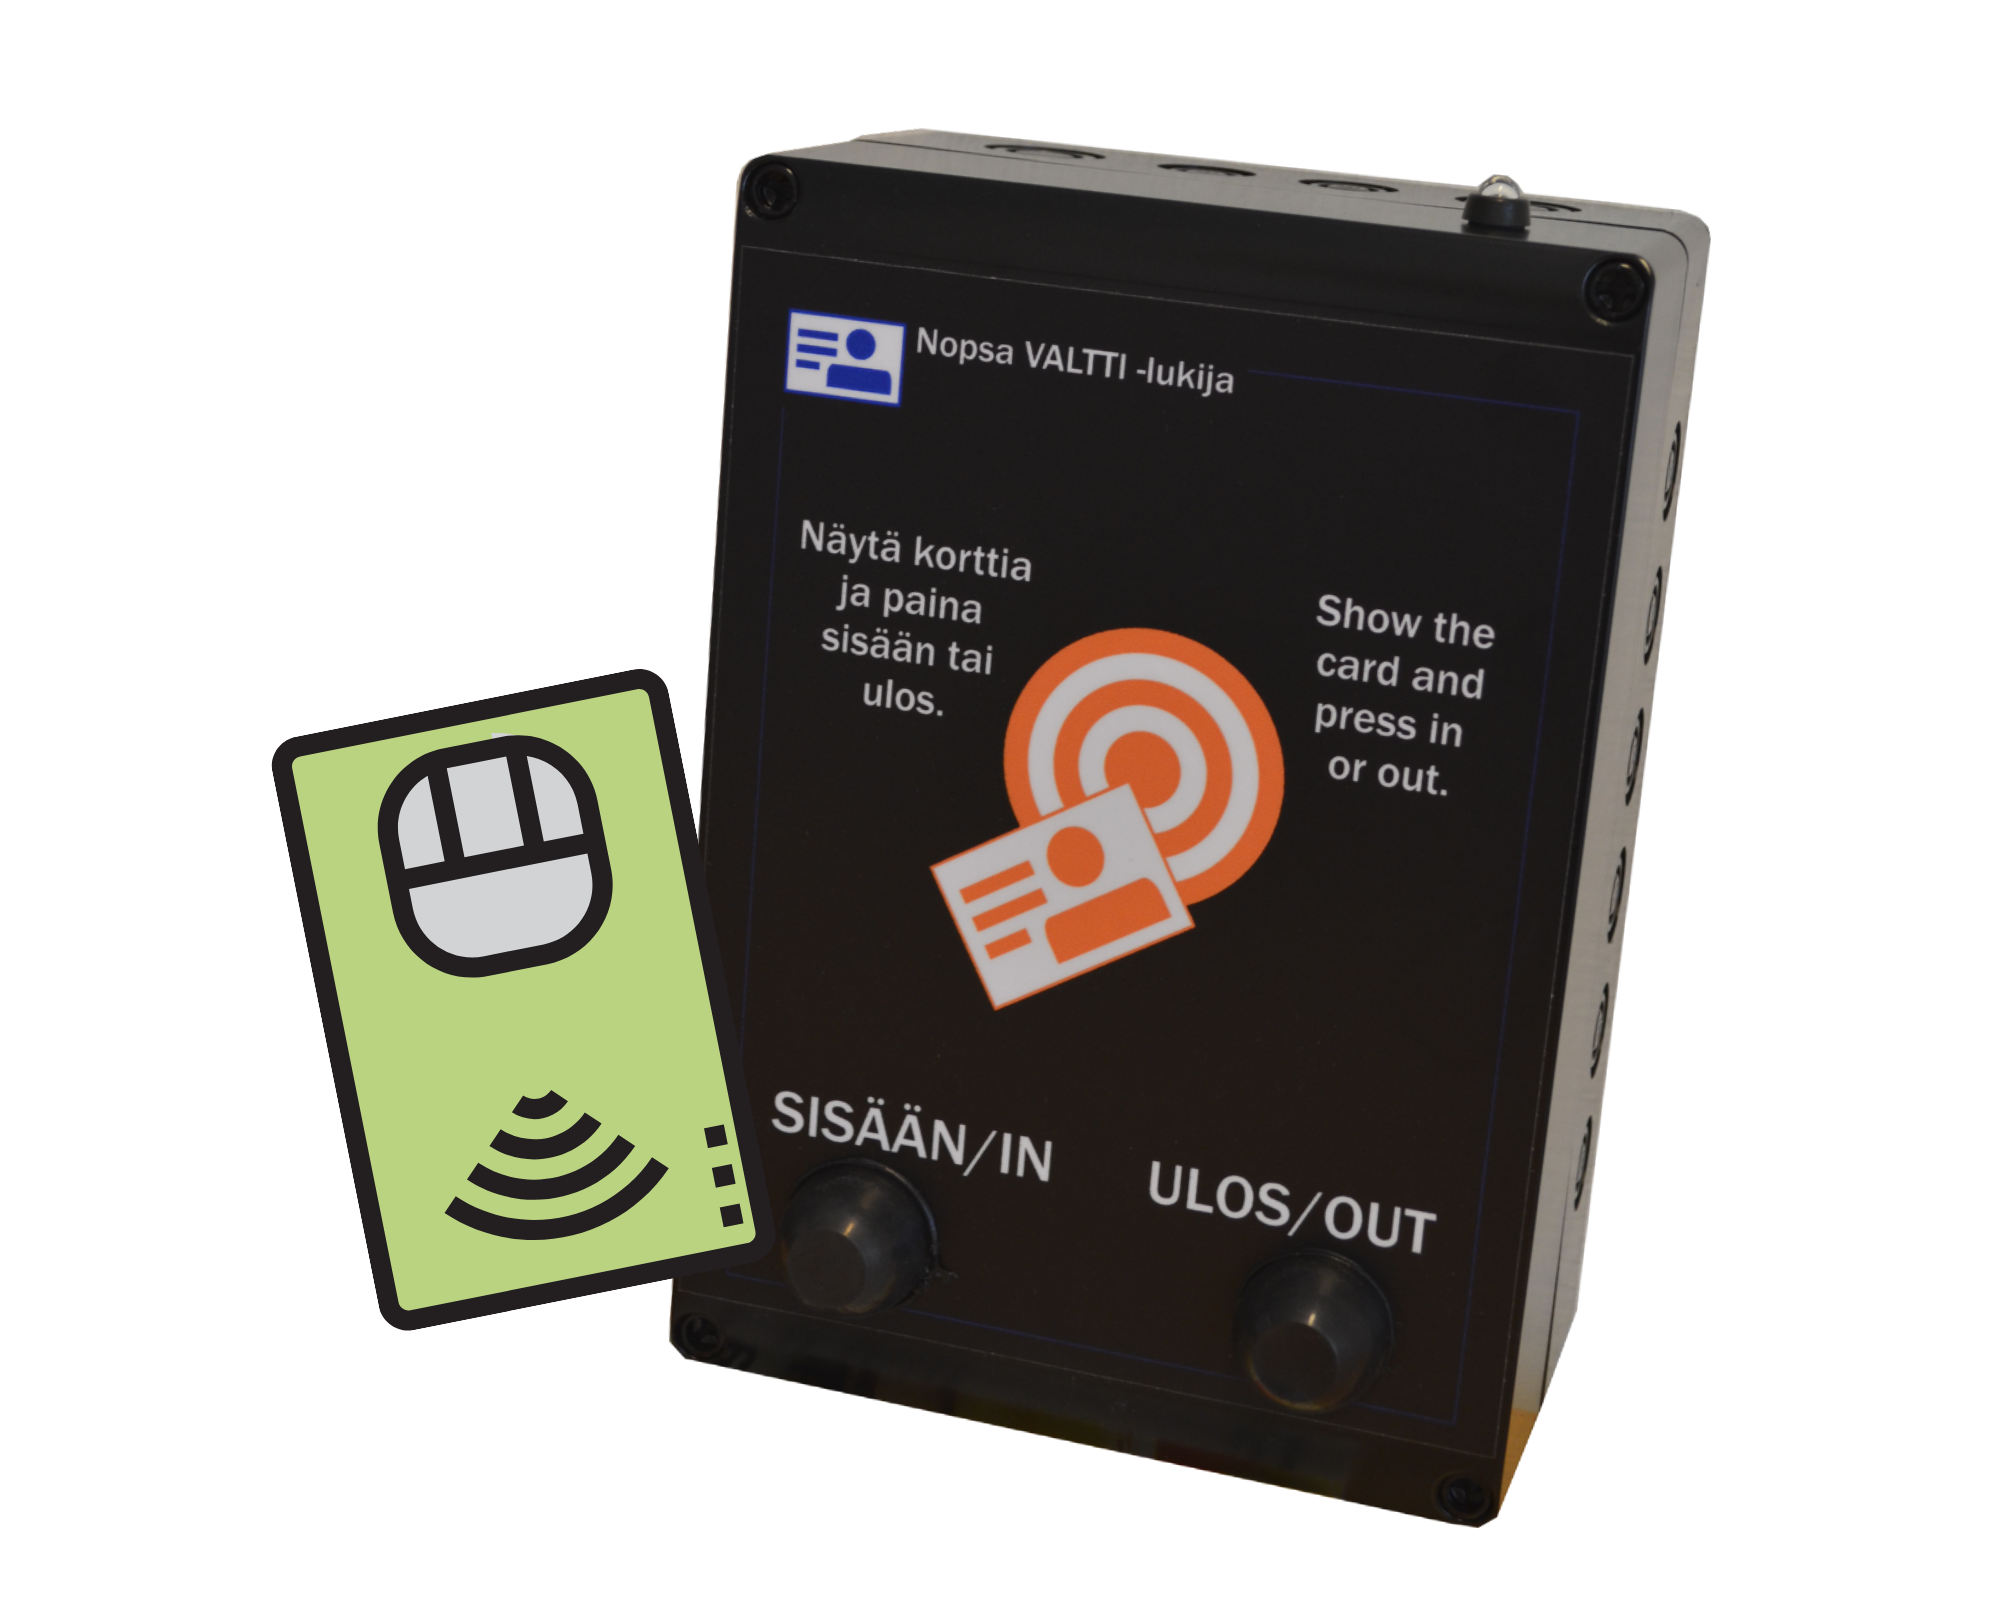 Site access control with smart cards